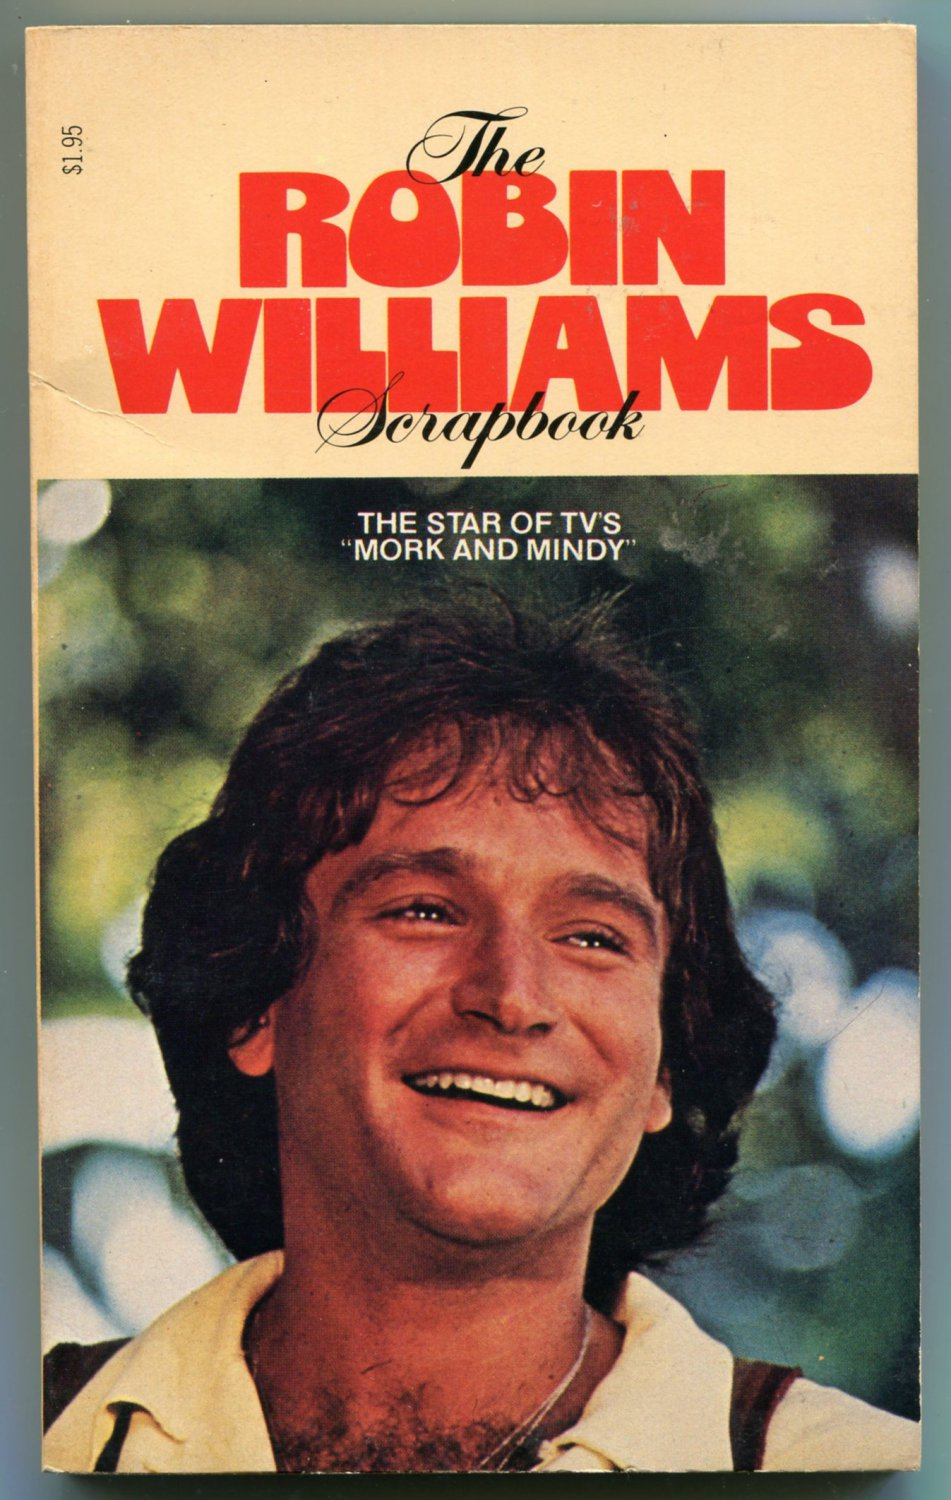 THE ROBIN WILLIAMS SCRAPBOOK Mary Ellen Moore First Printing 1979